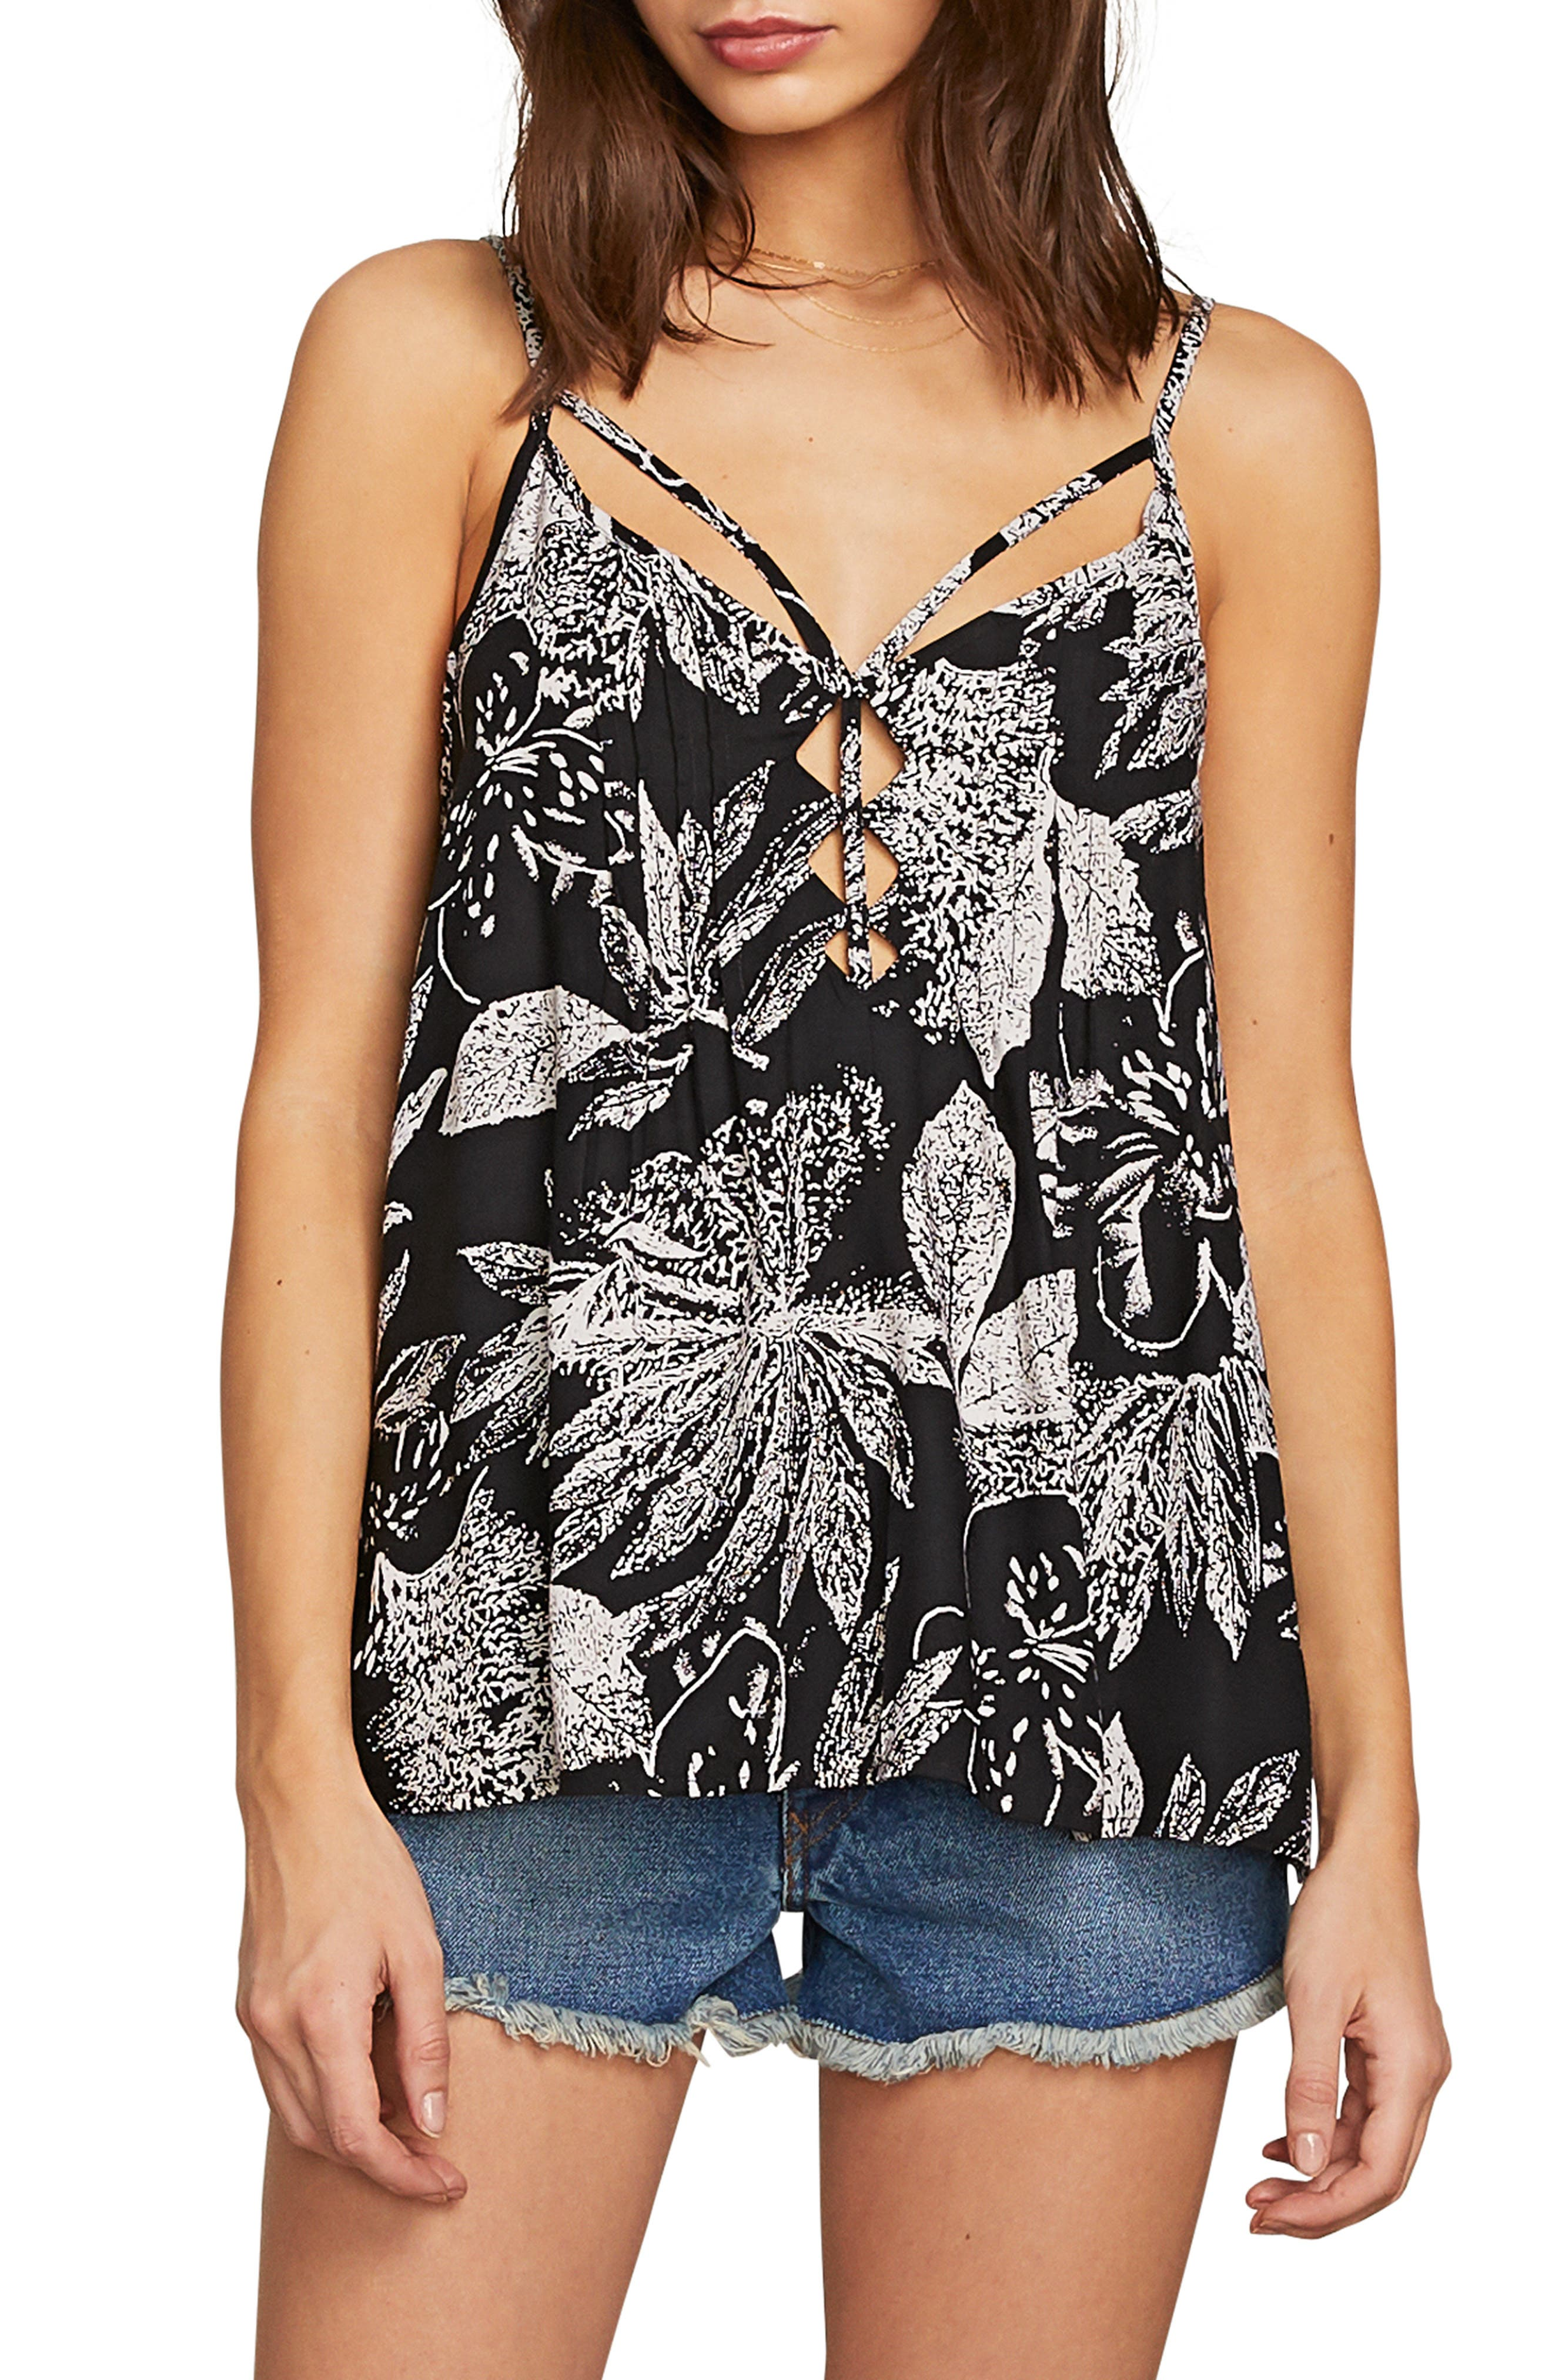 Do Tell Strappy Camisole,                             Main thumbnail 1, color,                             BLACK COMBO